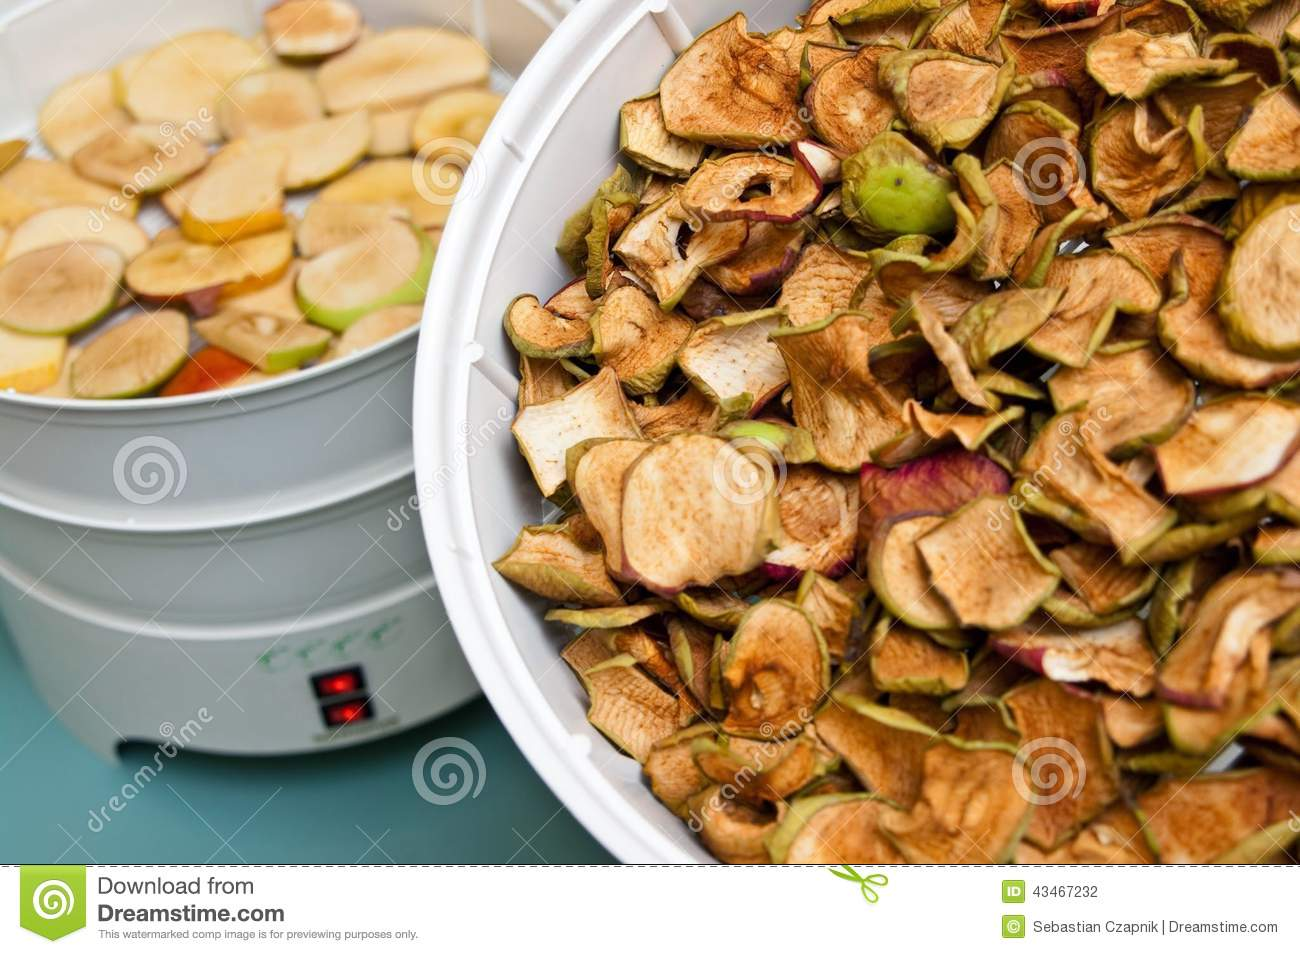 Fruit dryer with apple pieces